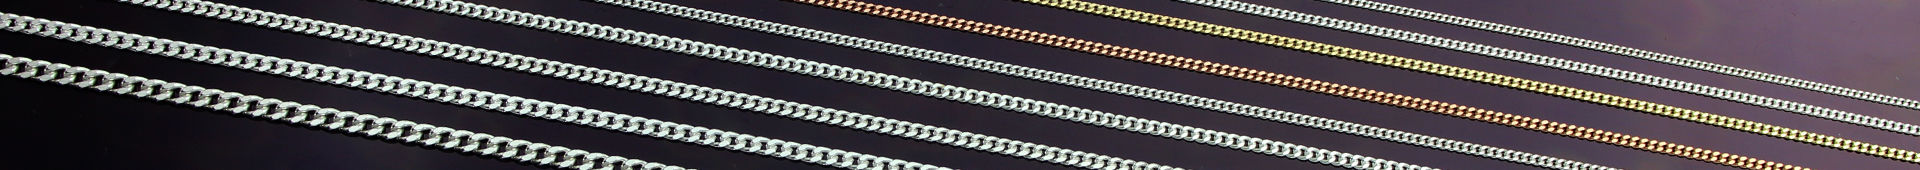 Women's Sterling Silver Curb Chain Necklaces